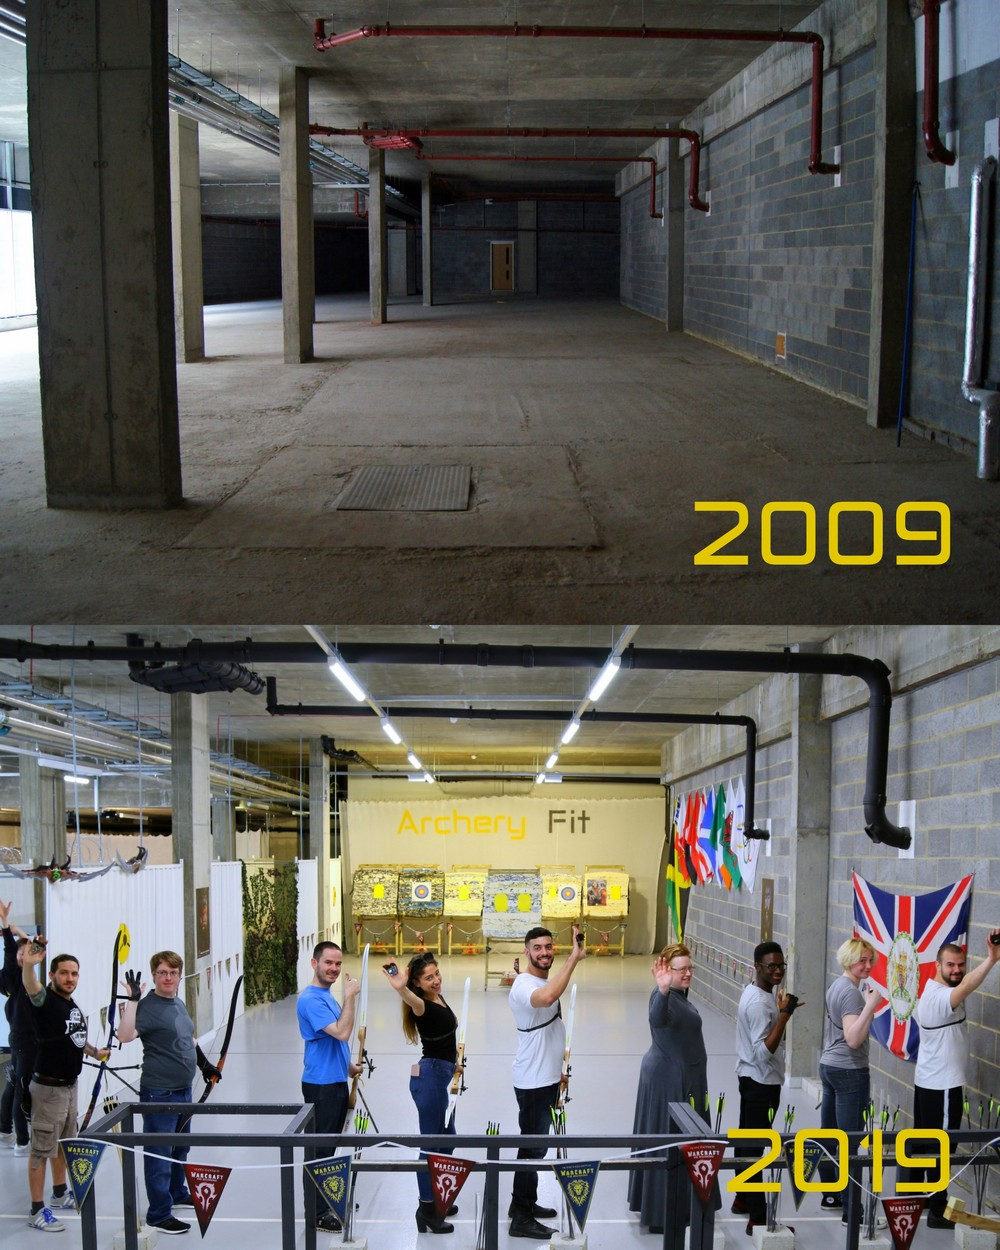 Archery Fit #10YearsChallenge :)